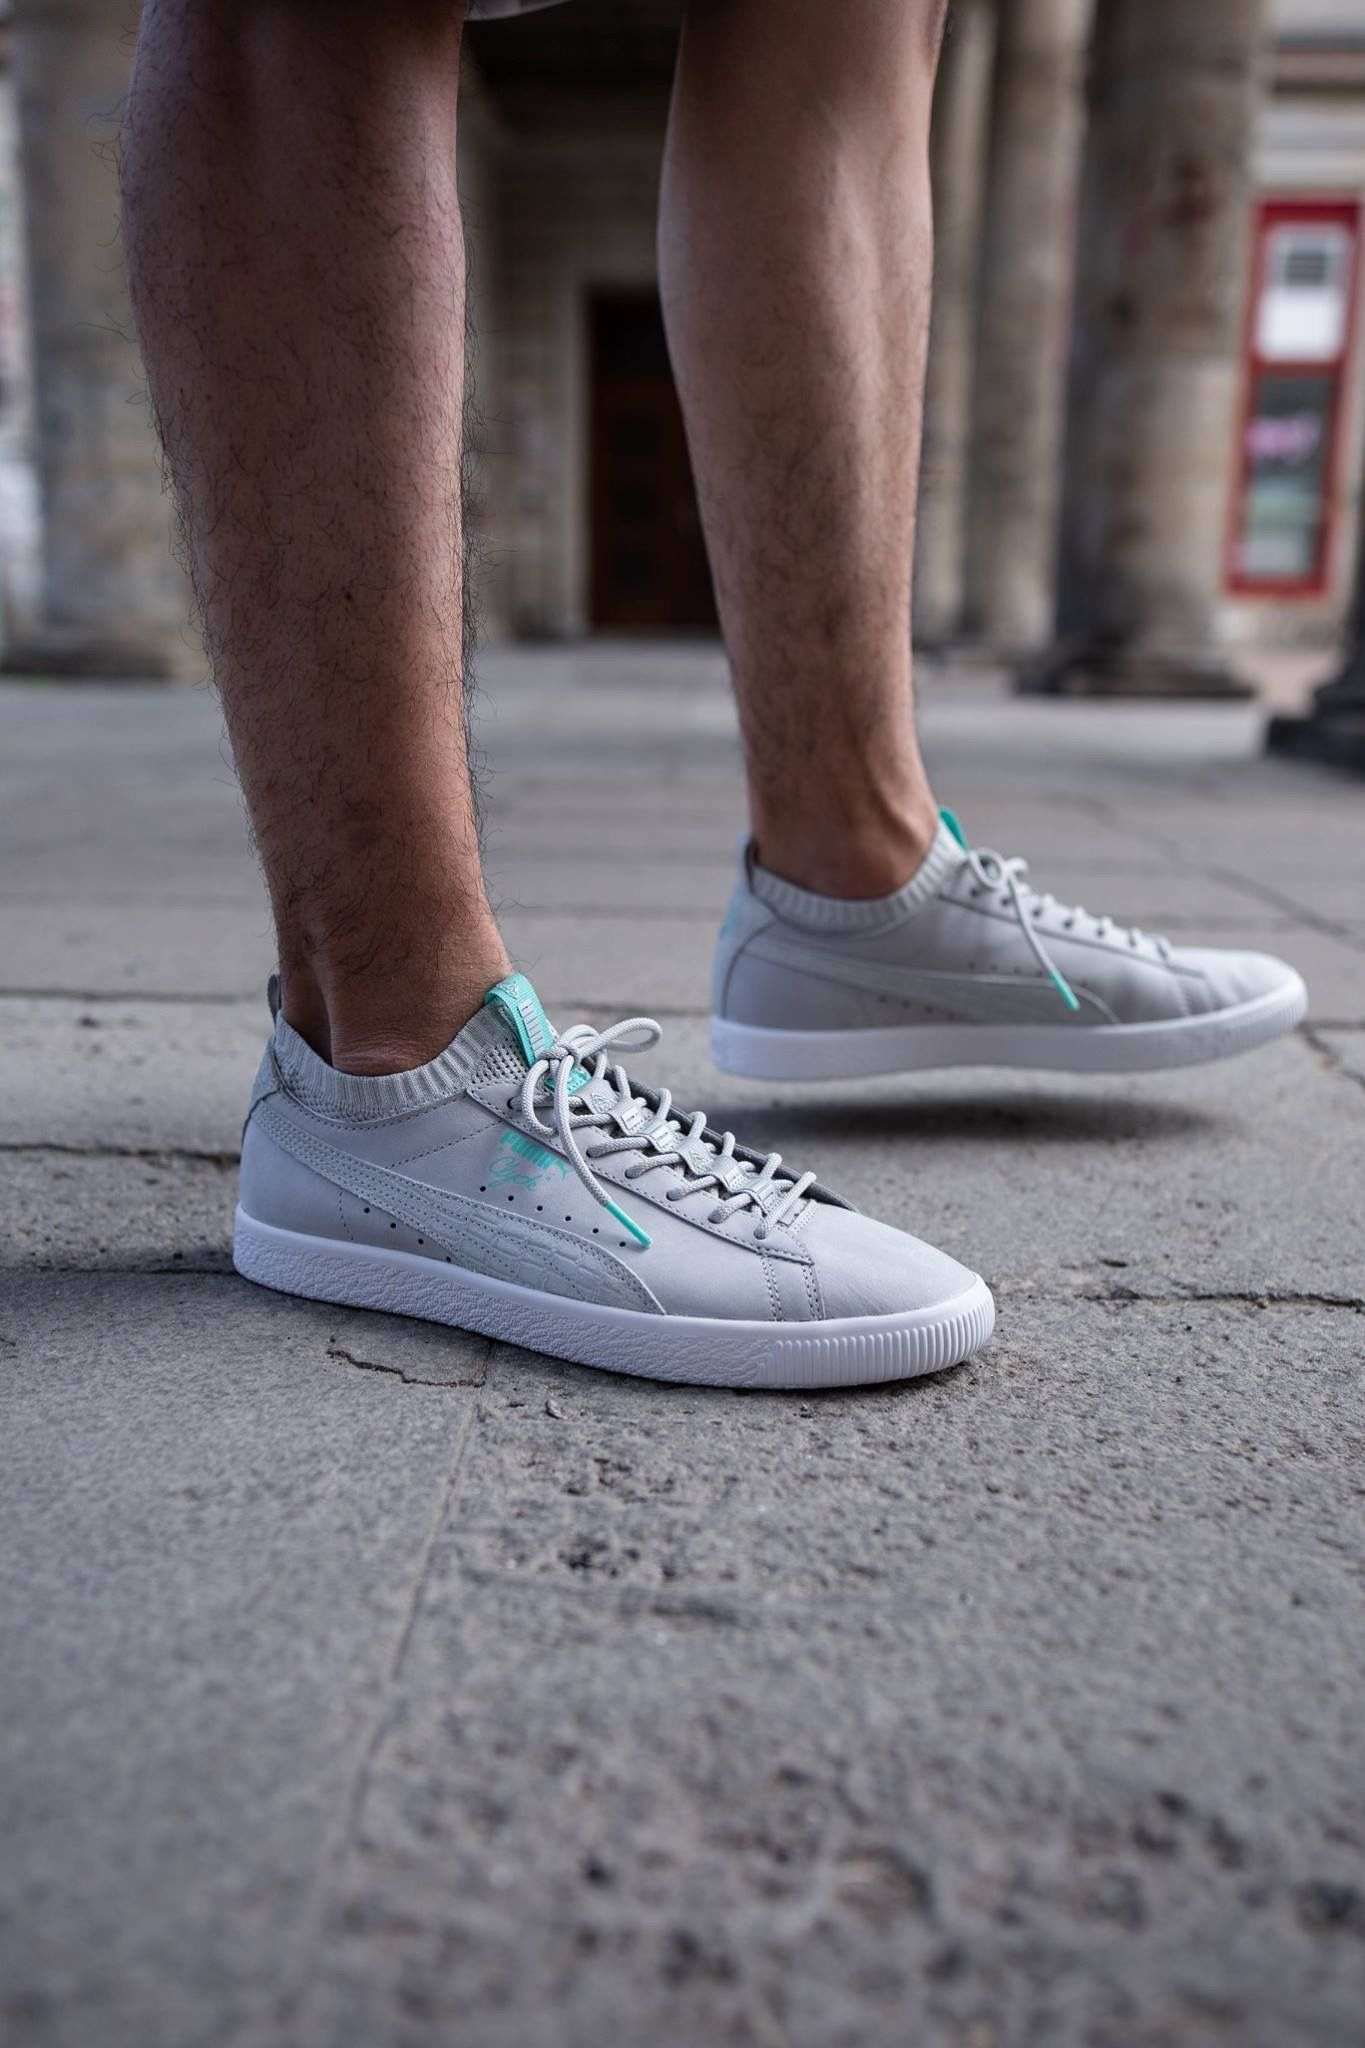 d866097b336 Diamond Supply Co x Puma Clyde Sock